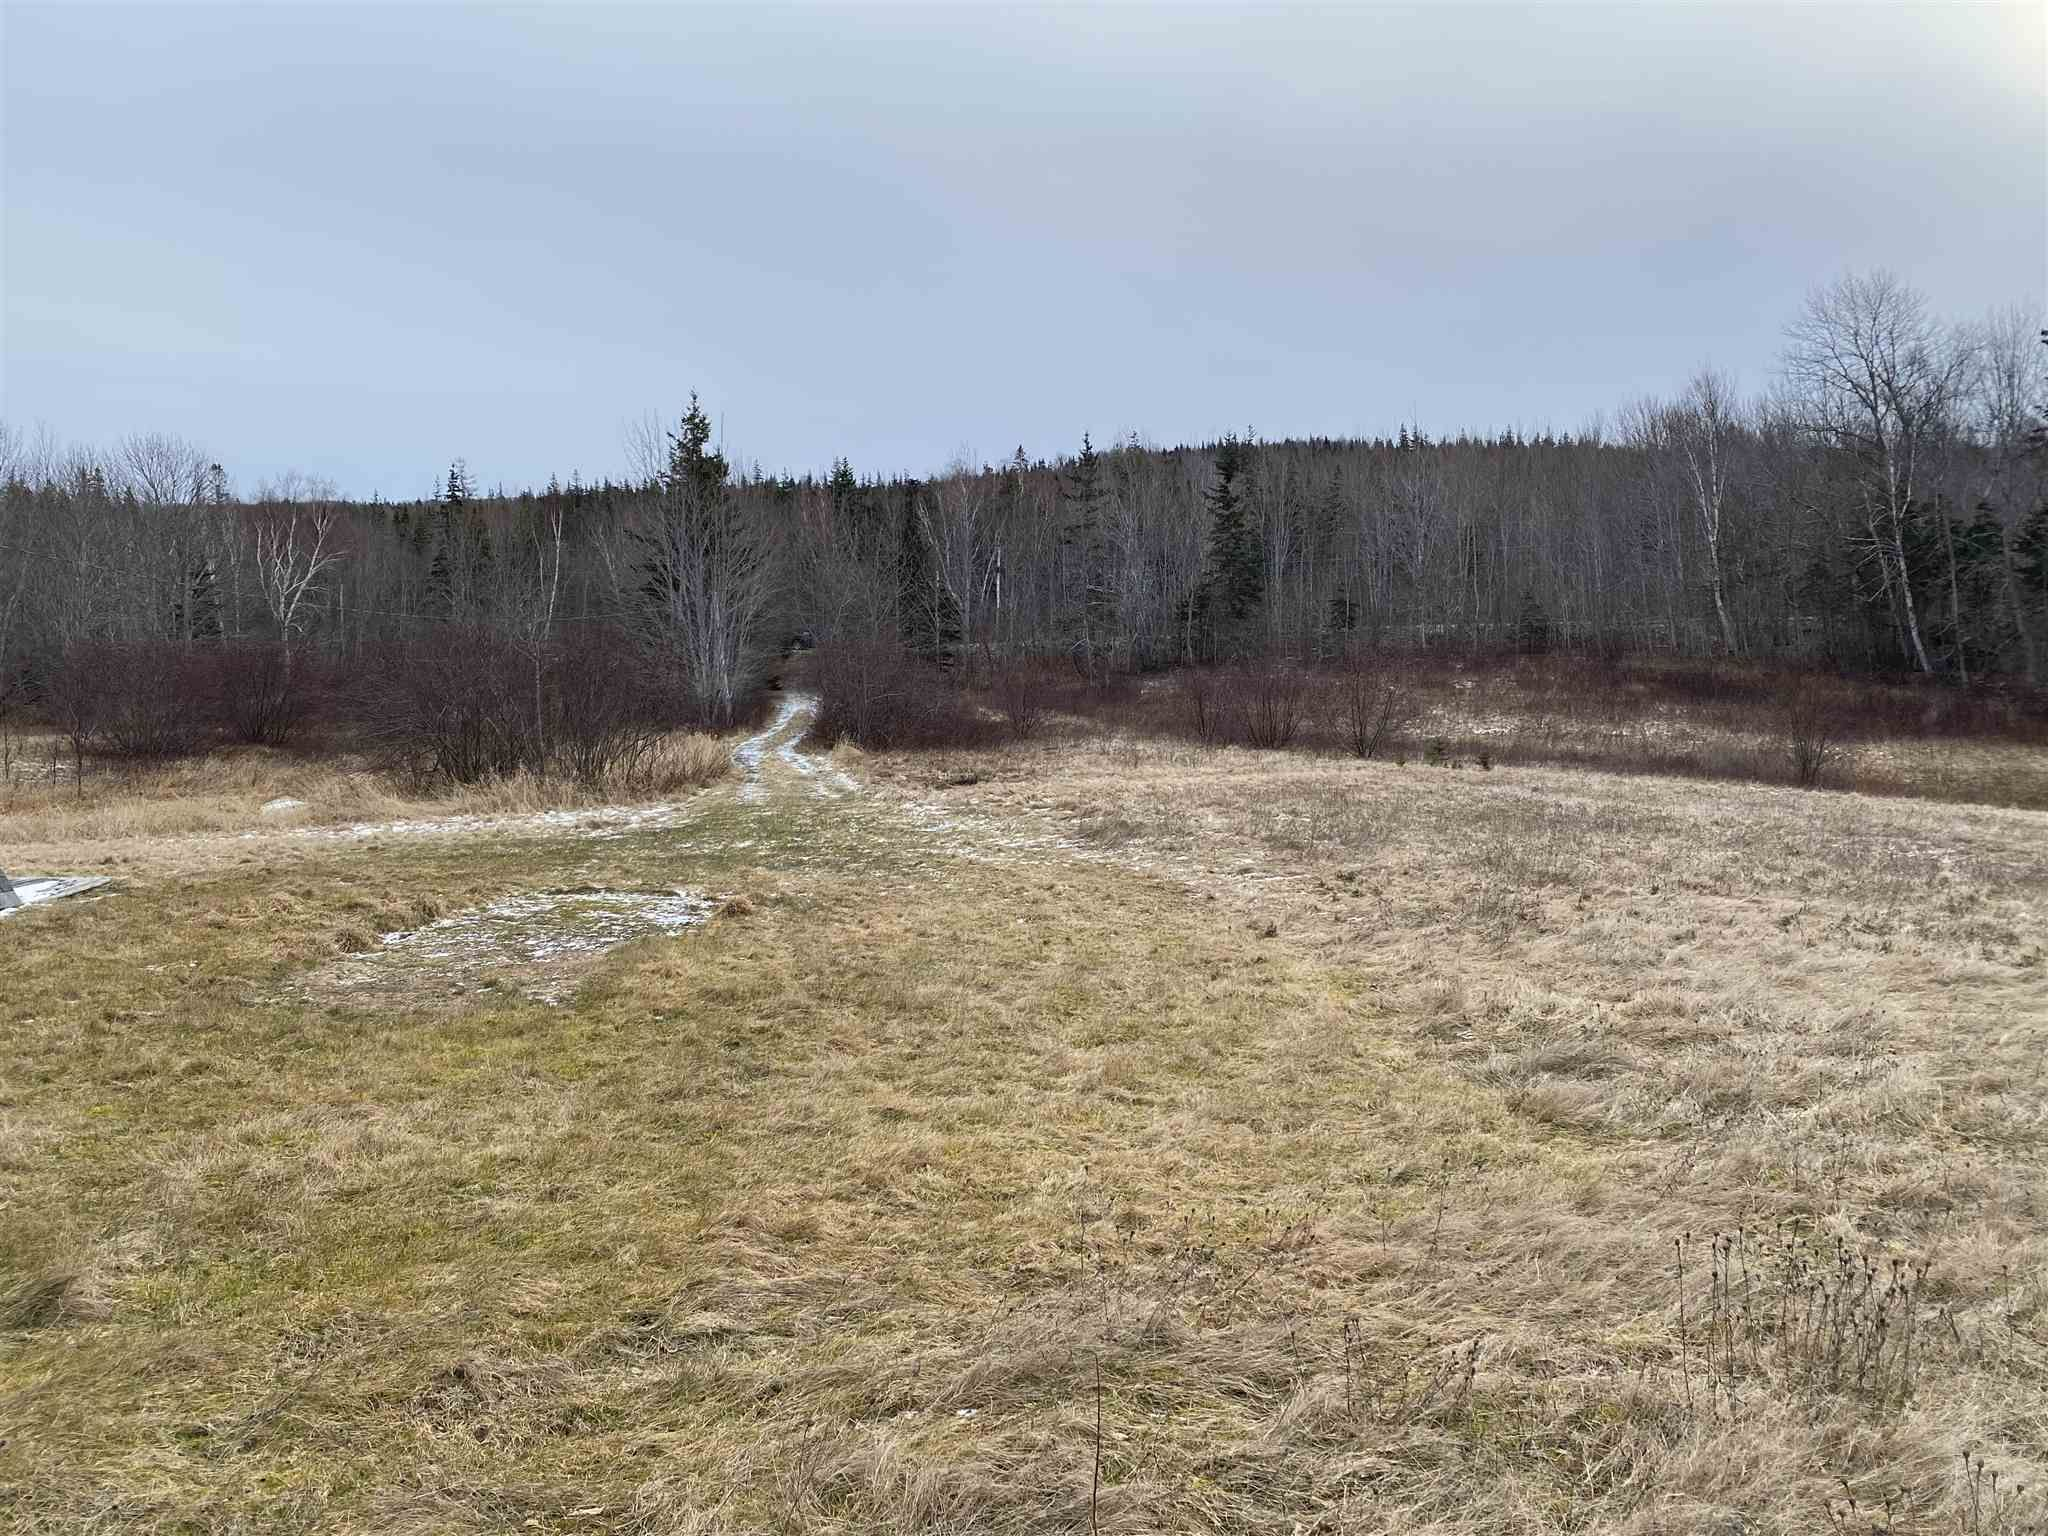 Photo 5: Photos: 8080 Marble Mountain Road in Malagawatch: 306-Inverness County / Inverness & Area Vacant Land for sale (Highland Region)  : MLS®# 202101037